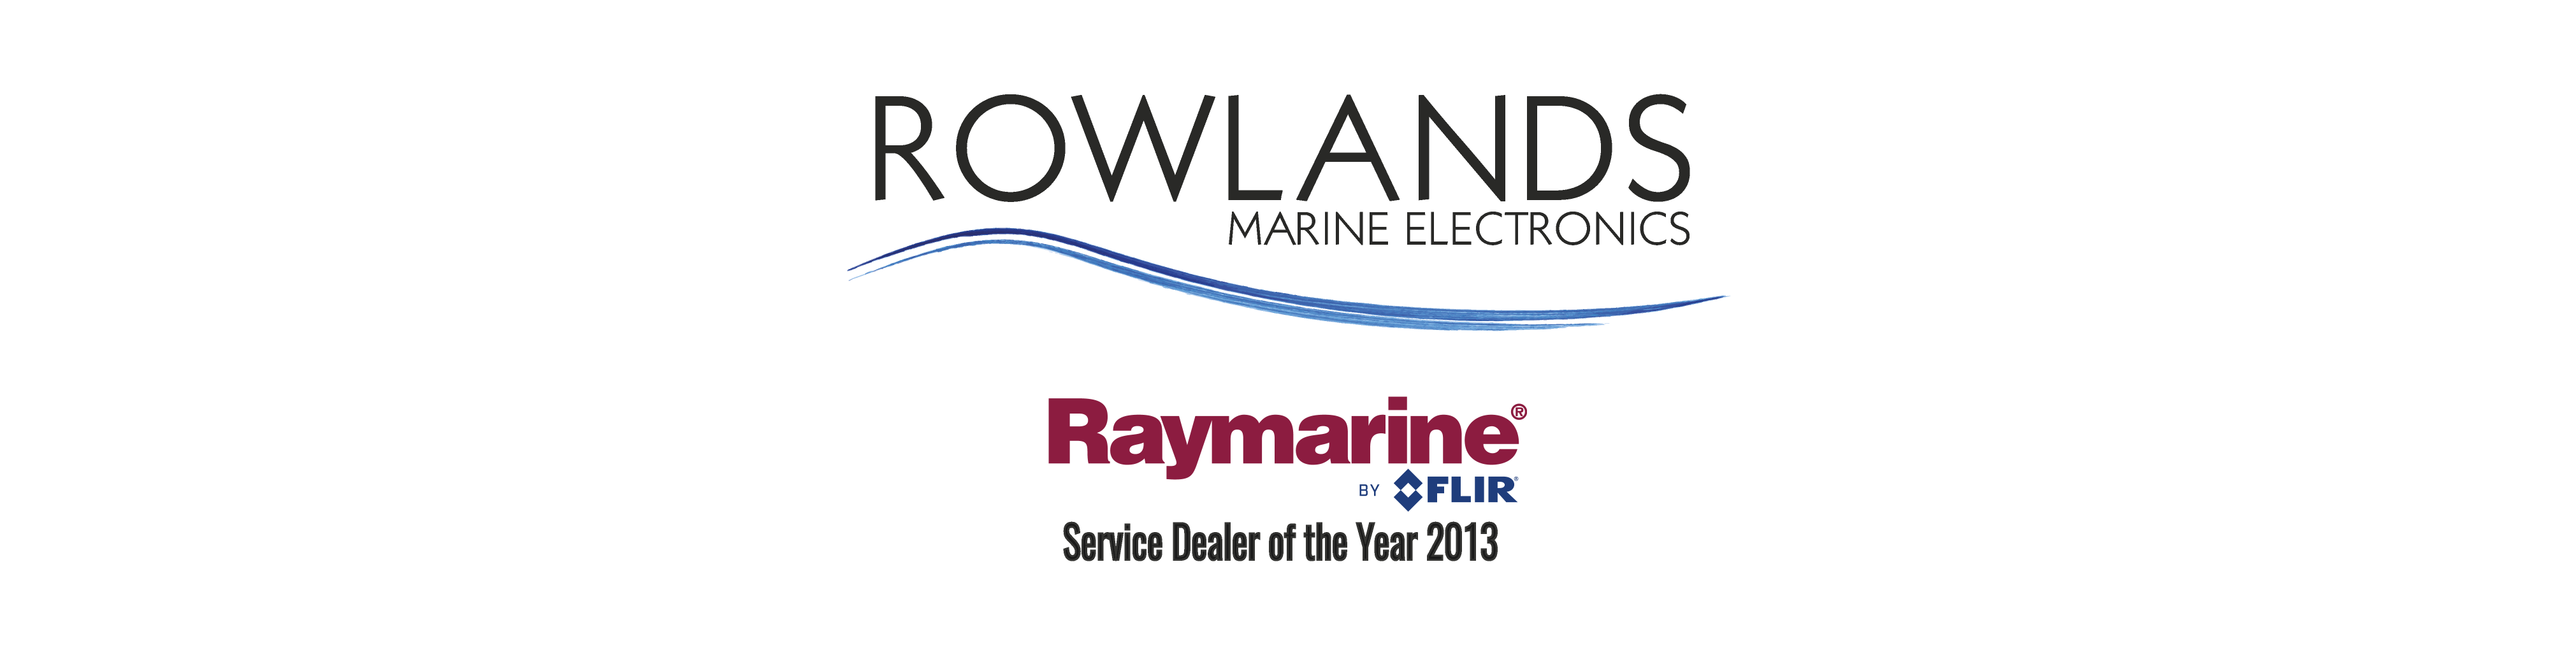 rowlands marine electronics raymarine service dealer of the year banner